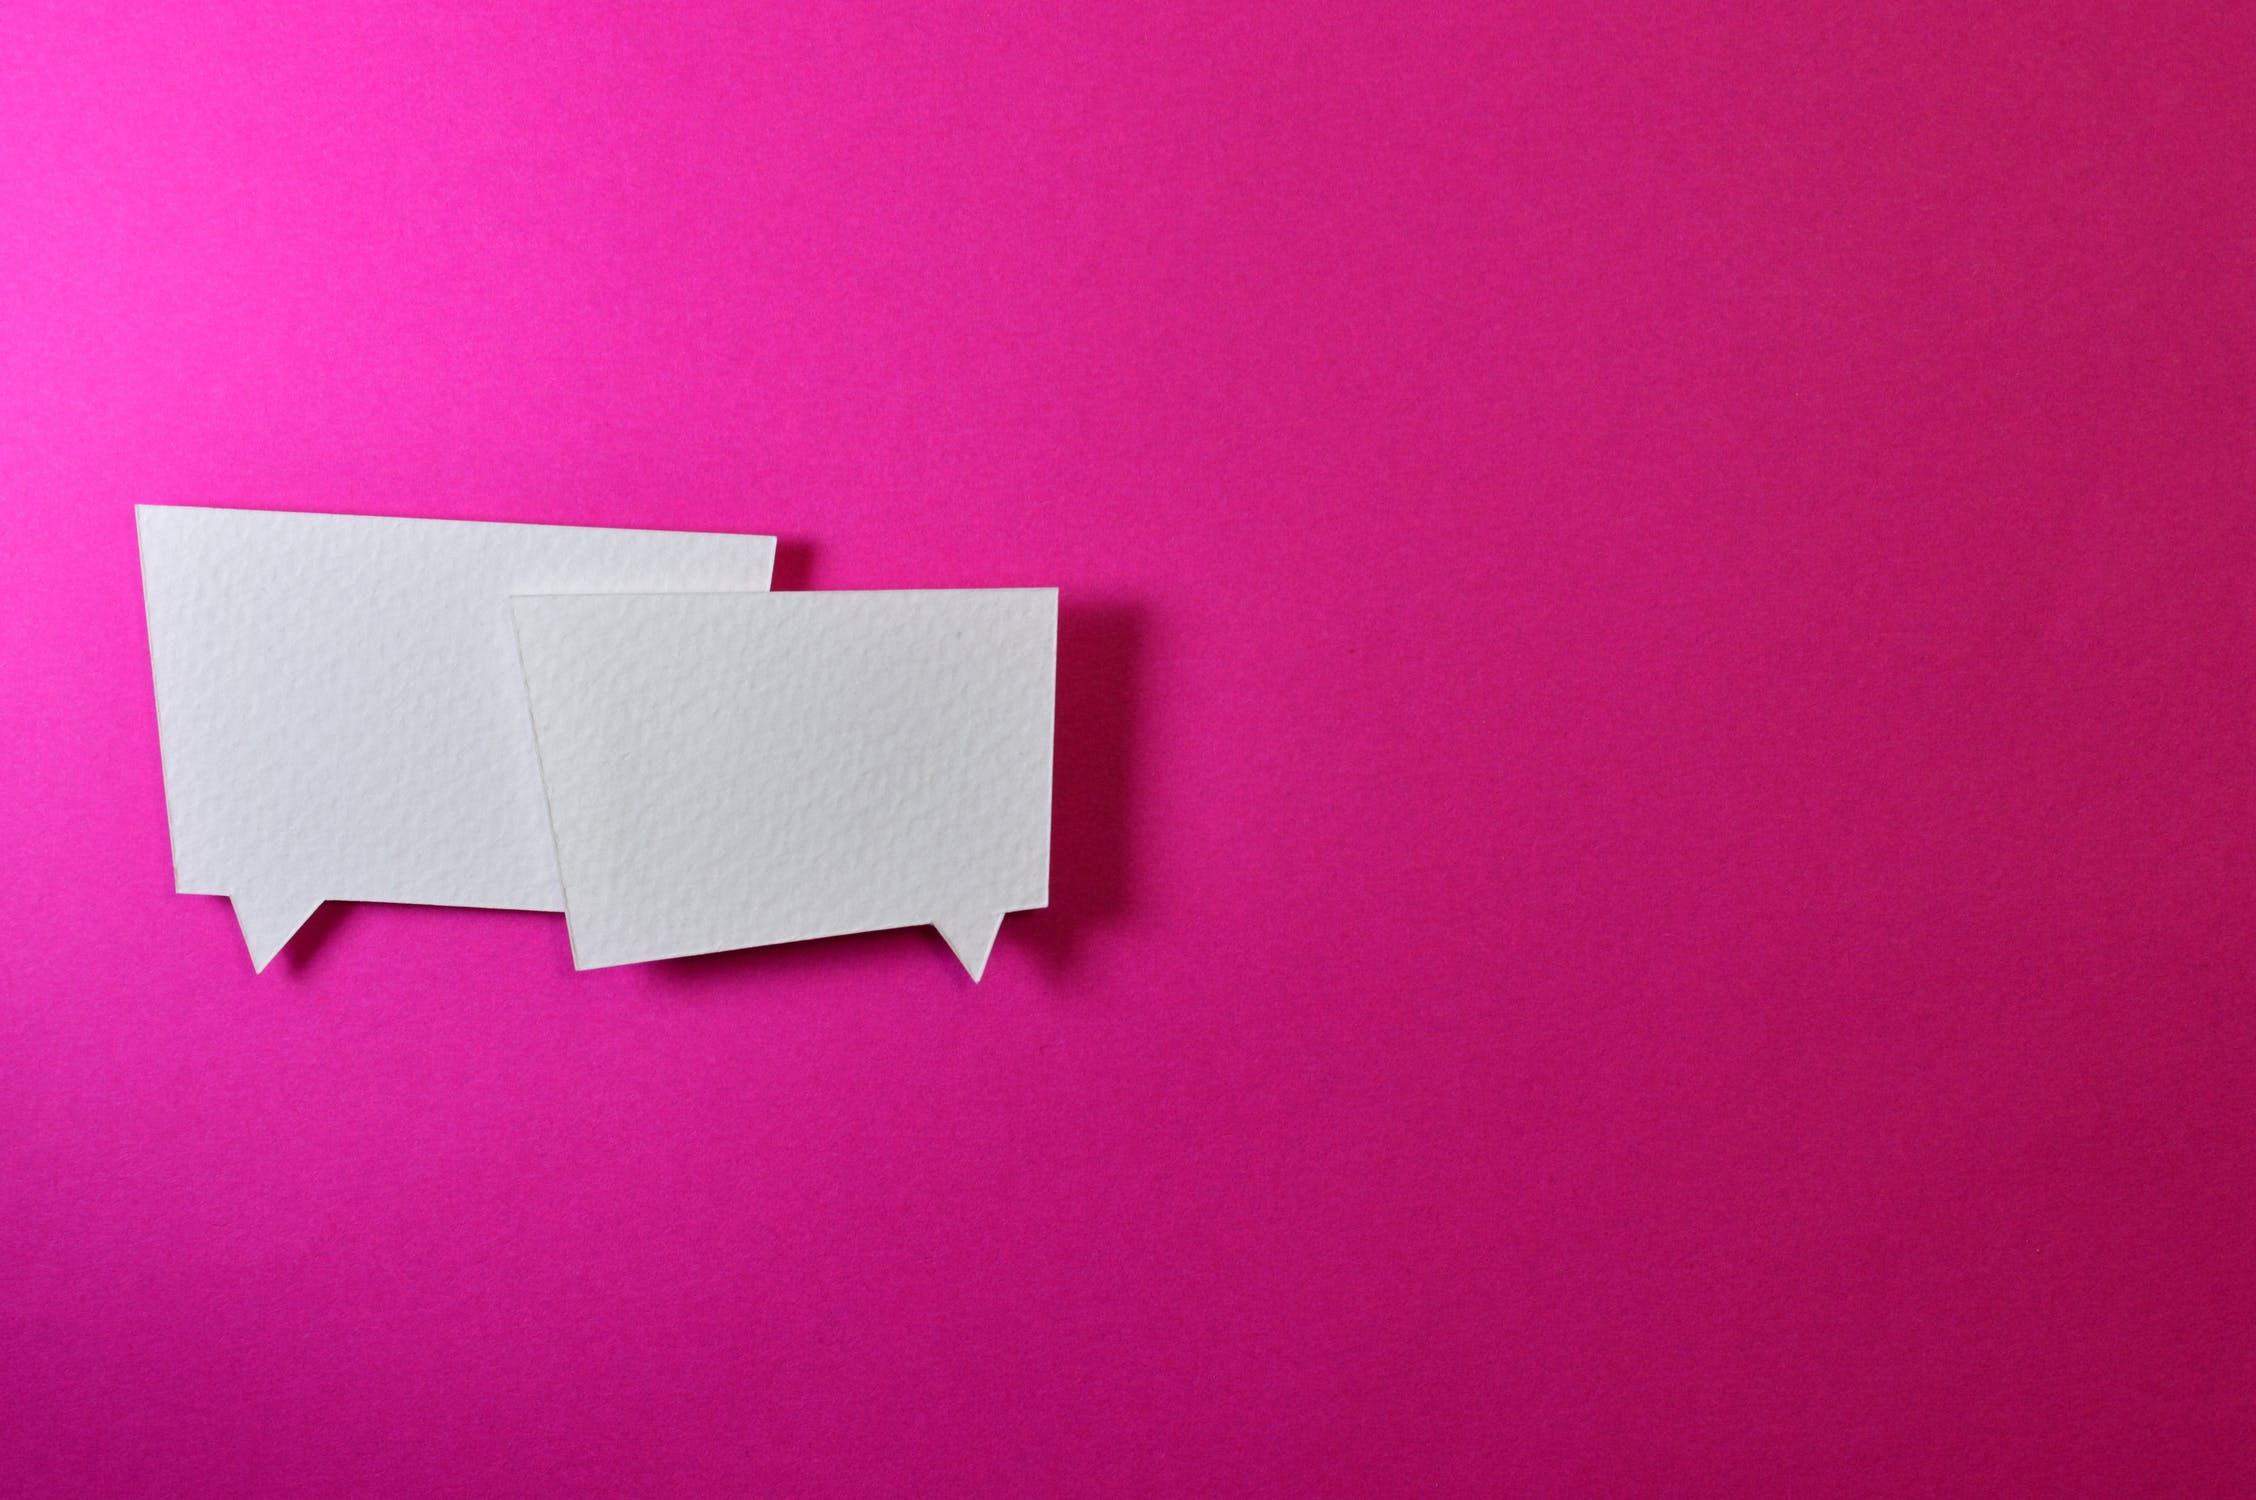 Two speech bubbles on a pink background